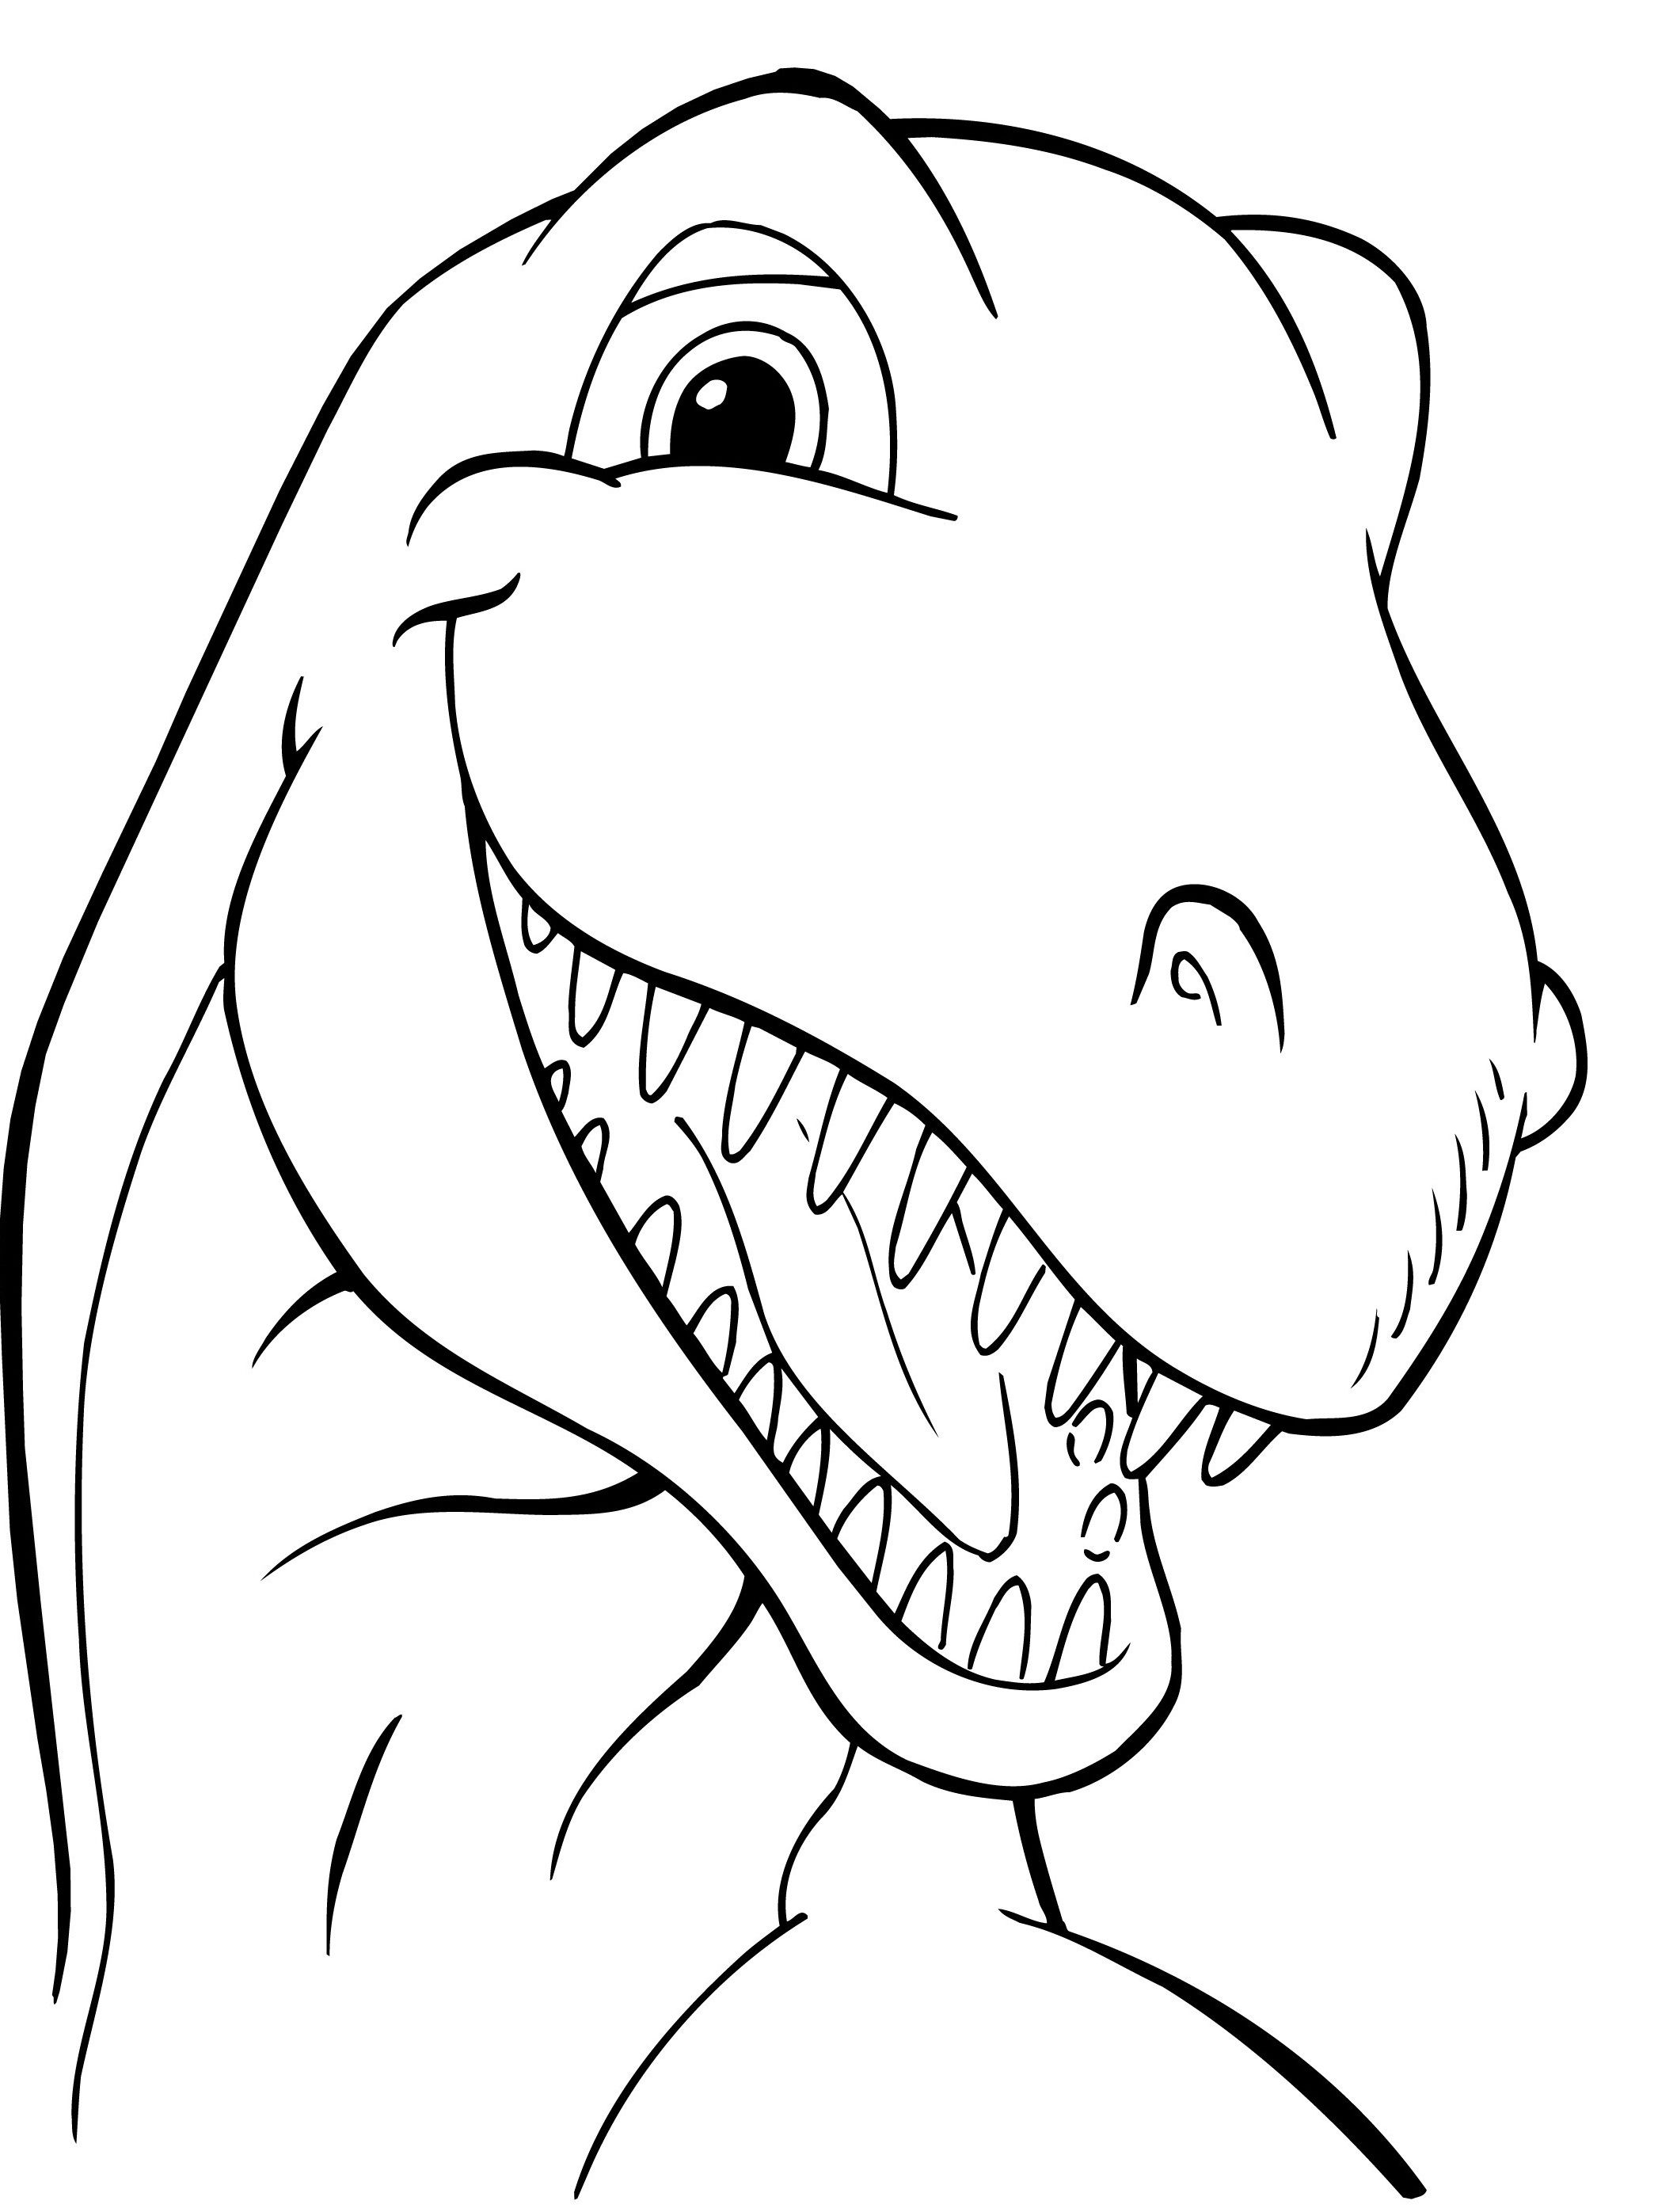 head dinosaurs dinosaurs dinosaur coloring pages dinosaur coloring dan dinosaur printables. Black Bedroom Furniture Sets. Home Design Ideas